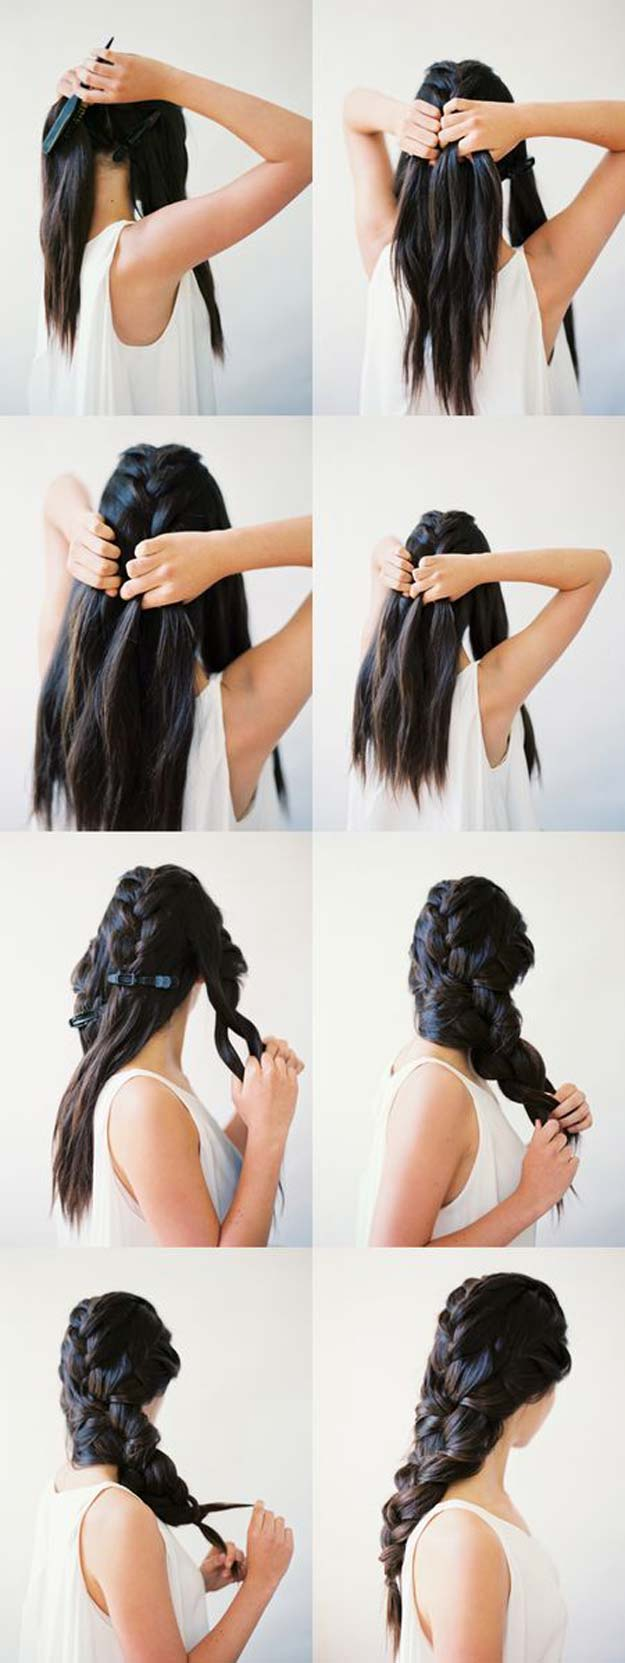 Awe Inspiring 41 Diy Cool Easy Hairstyles That Real People Can Actually Do At Short Hairstyles Gunalazisus